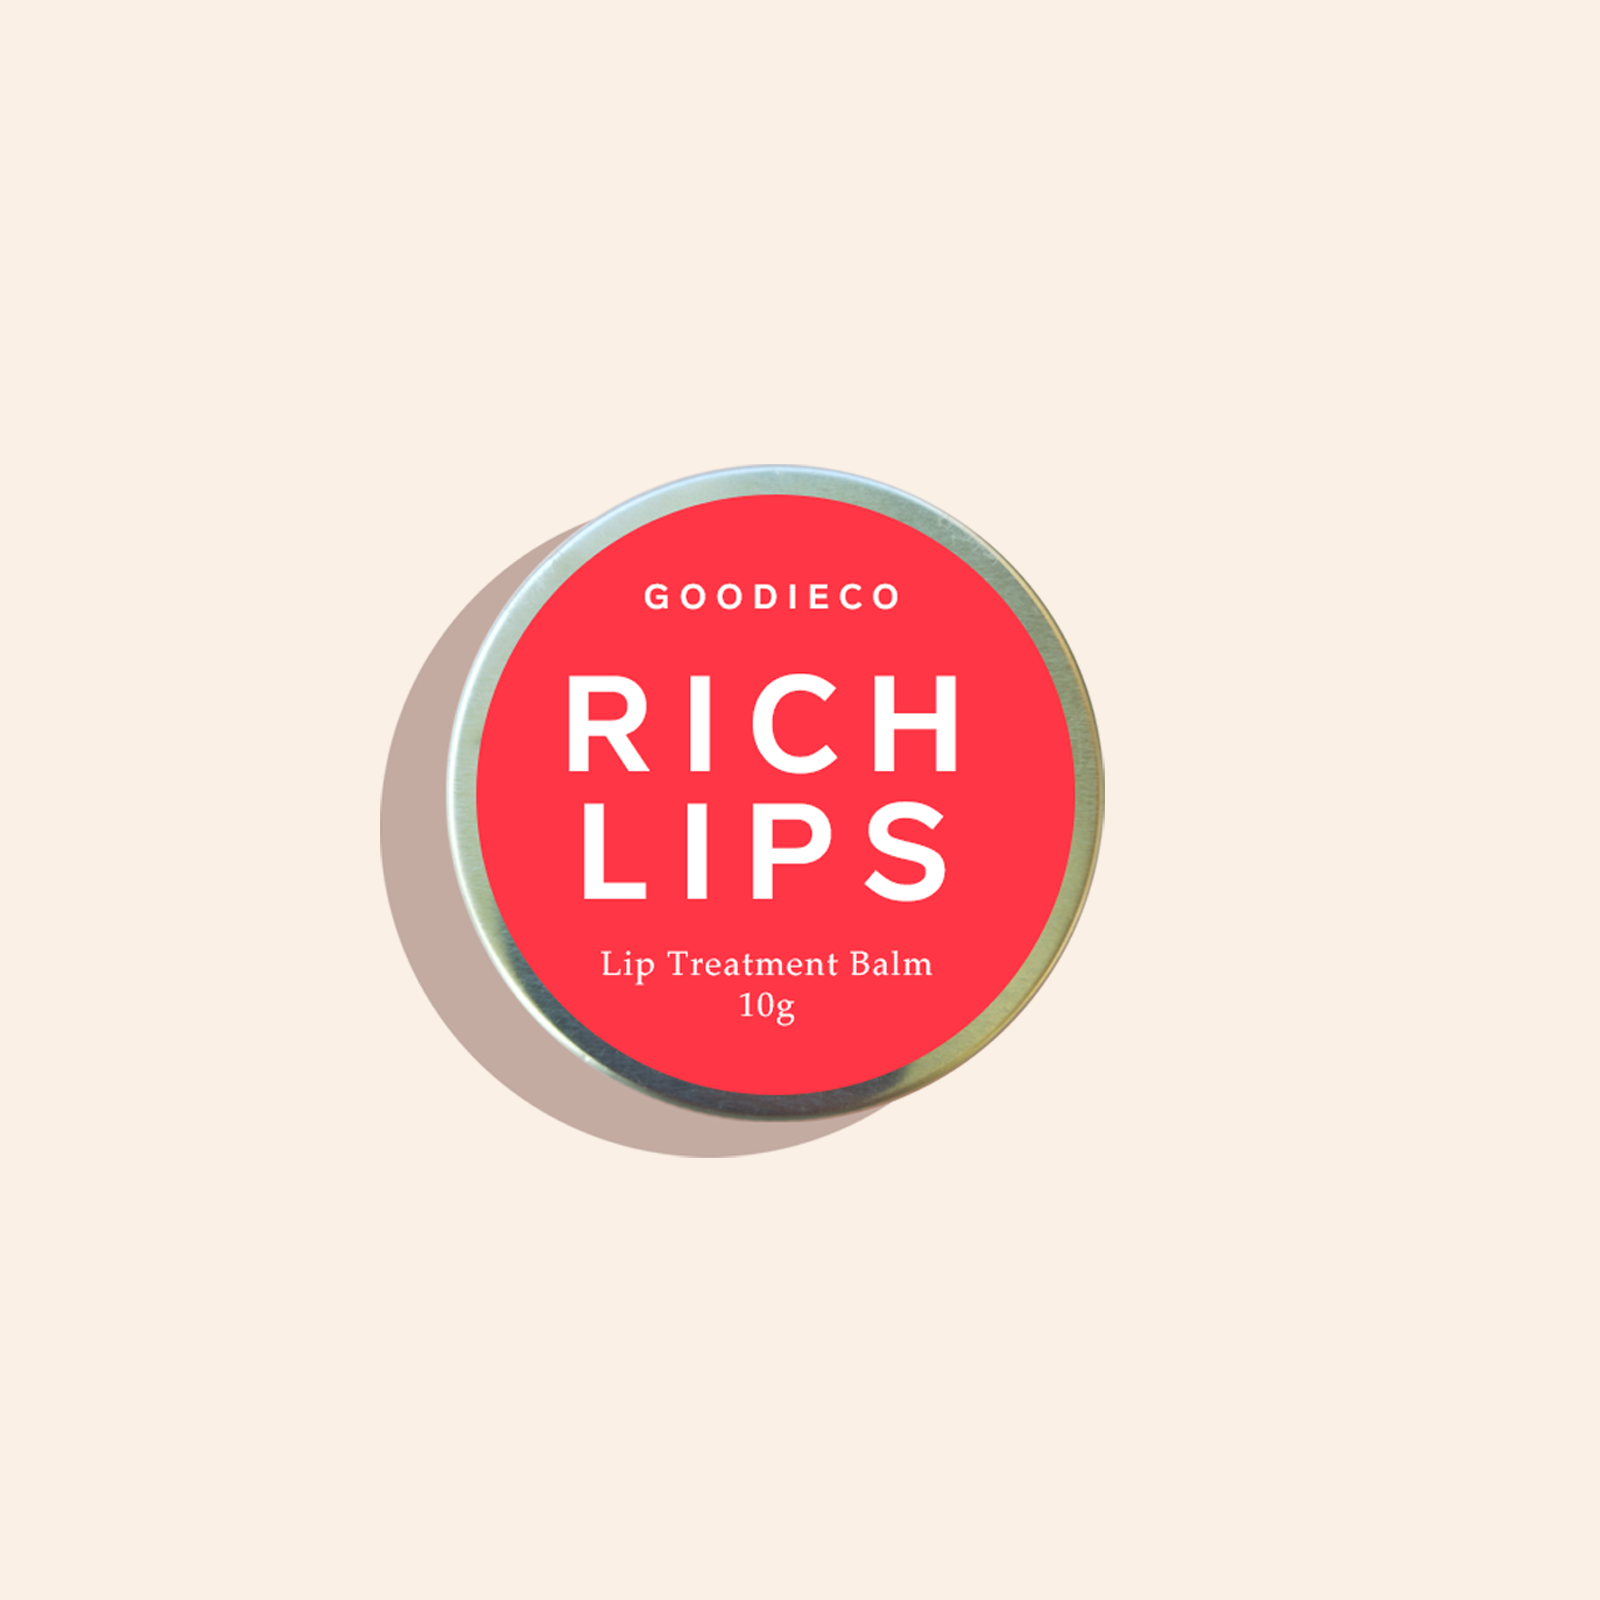 Rich Lips - Lip Treatment Balm